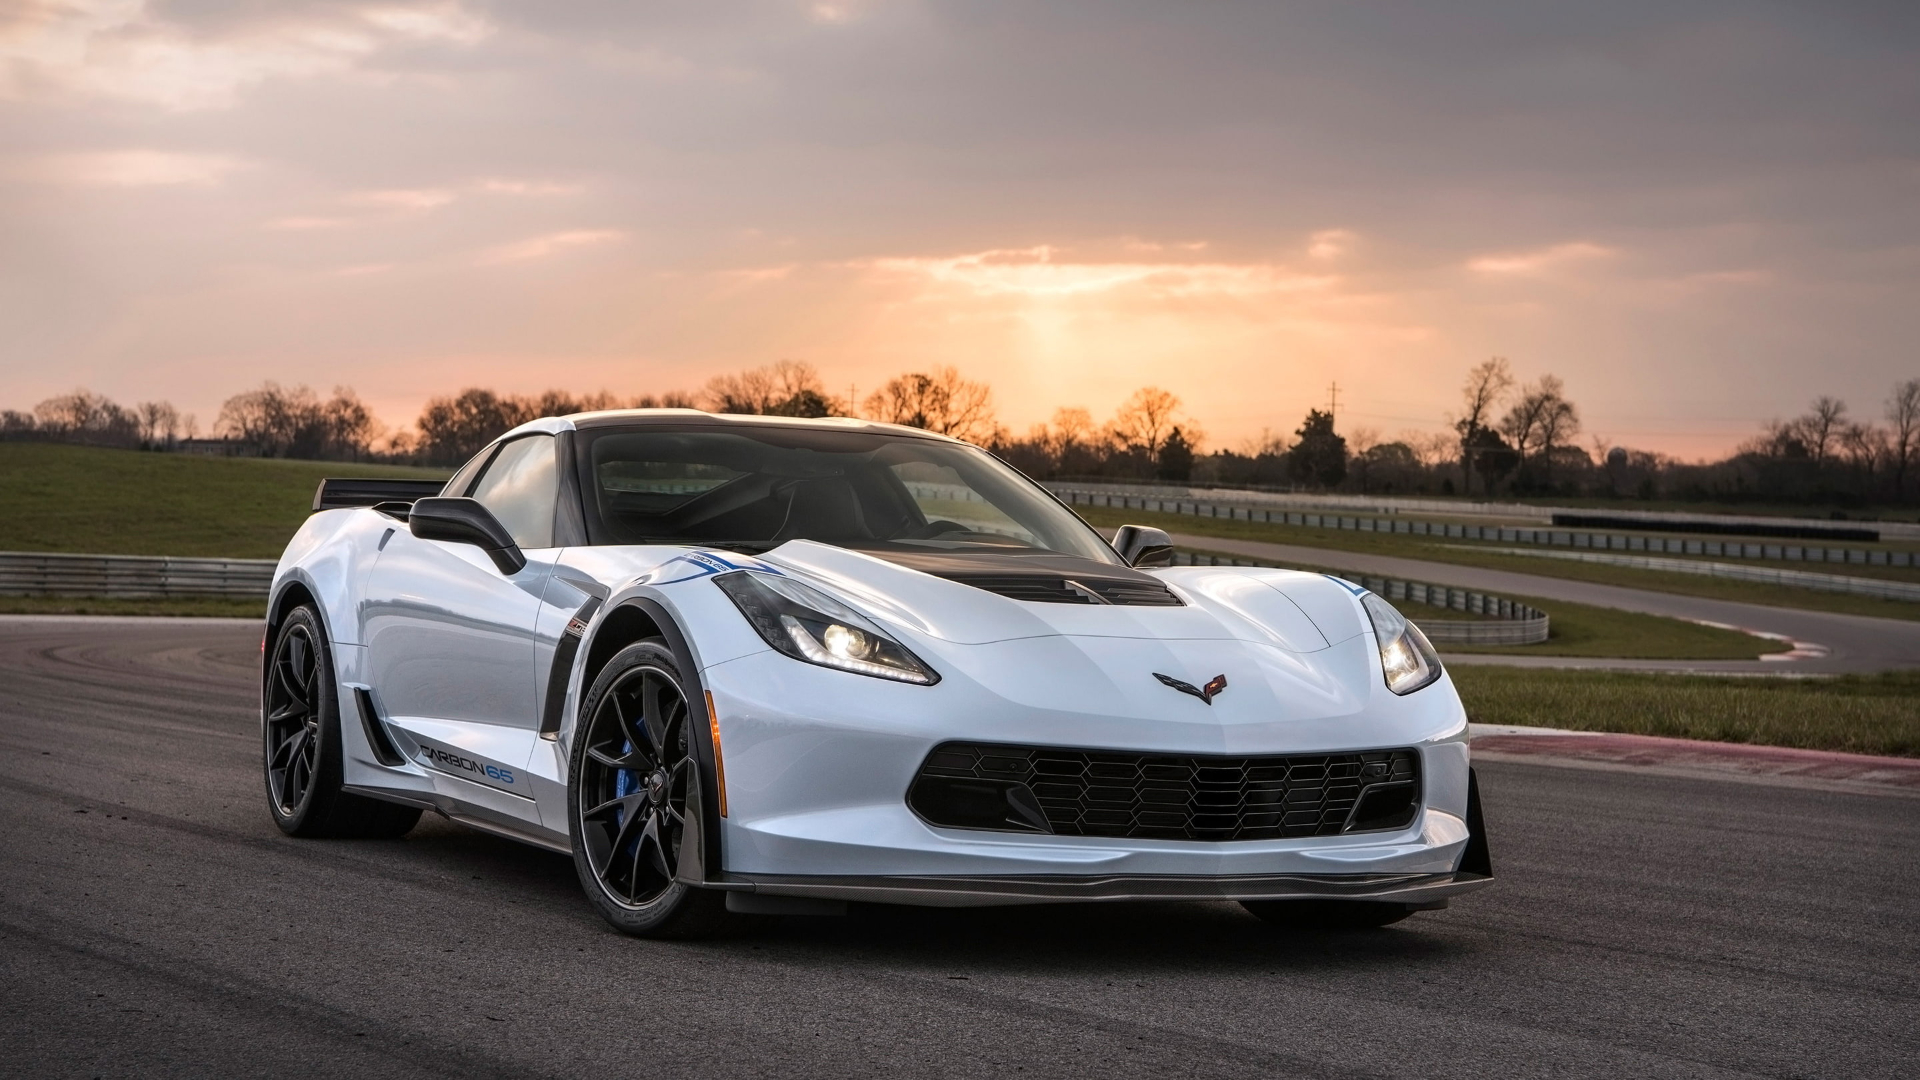 2018 Corvette Wallpapers